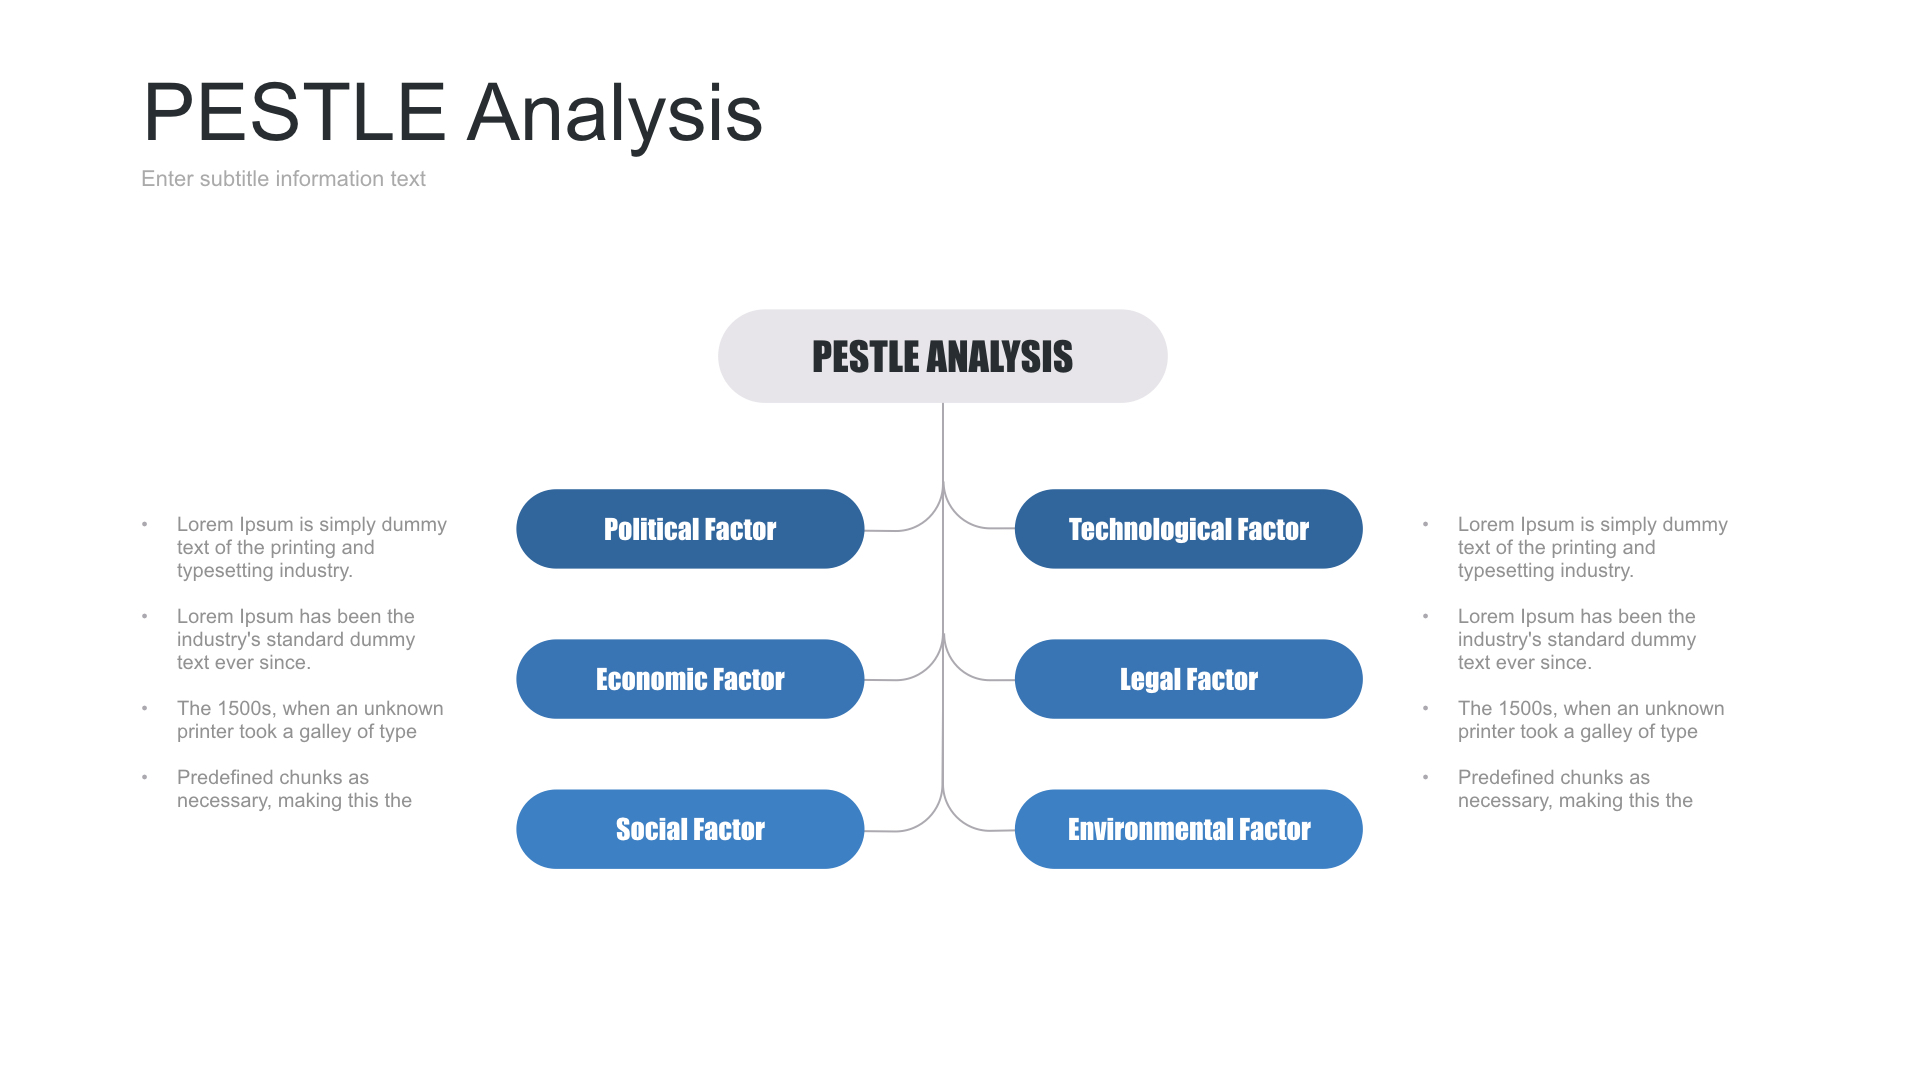 anheuser busch pest analysis A detailed brand analysis of anheuser-busch inbev sa includes its 4 p's of marketing | swot analysis | pest analysis | marketing strategy and.